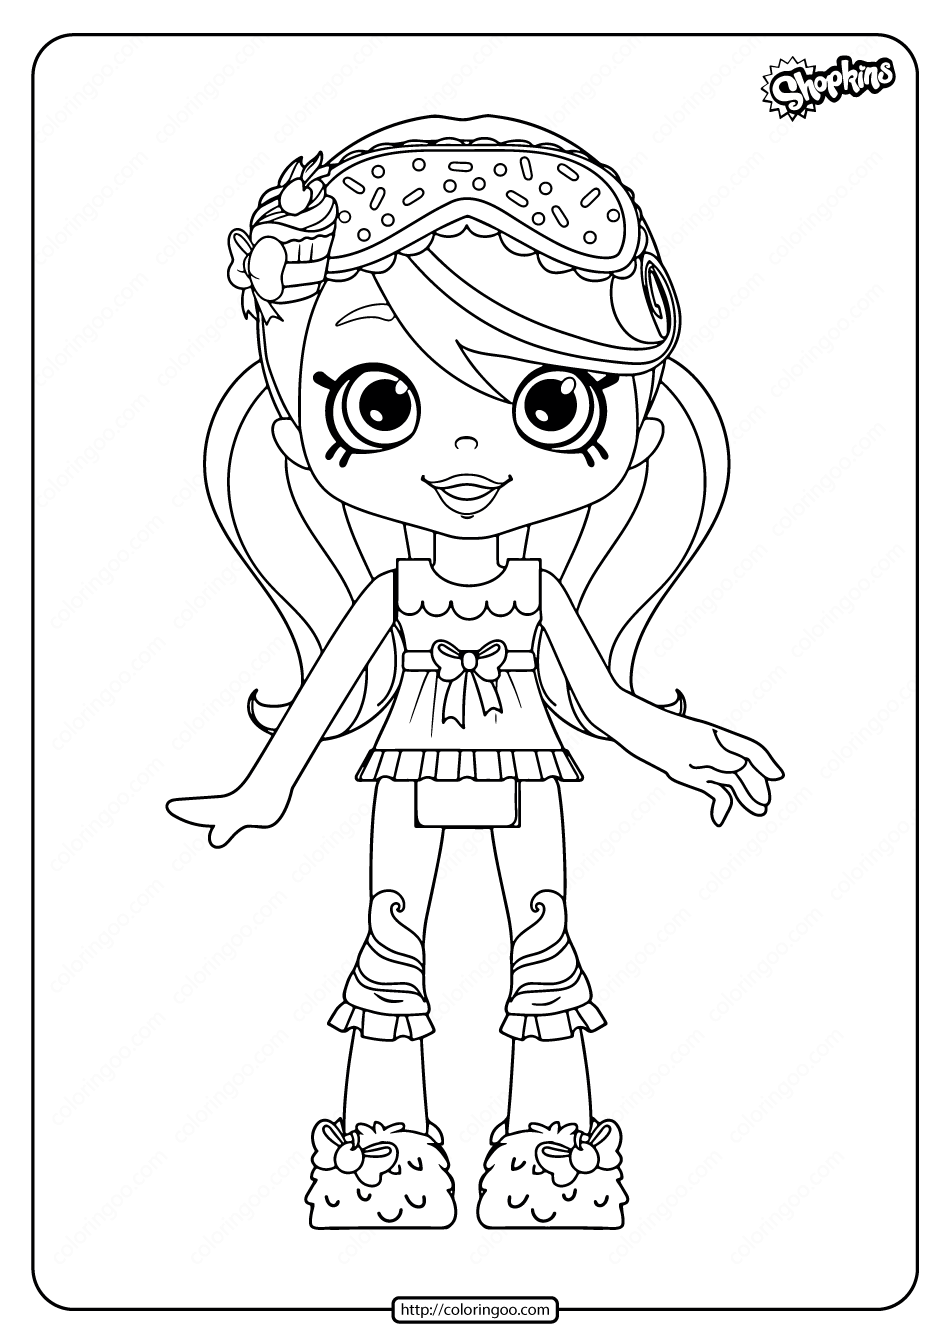 Printable Shopkins Jessicake Coloring Pages